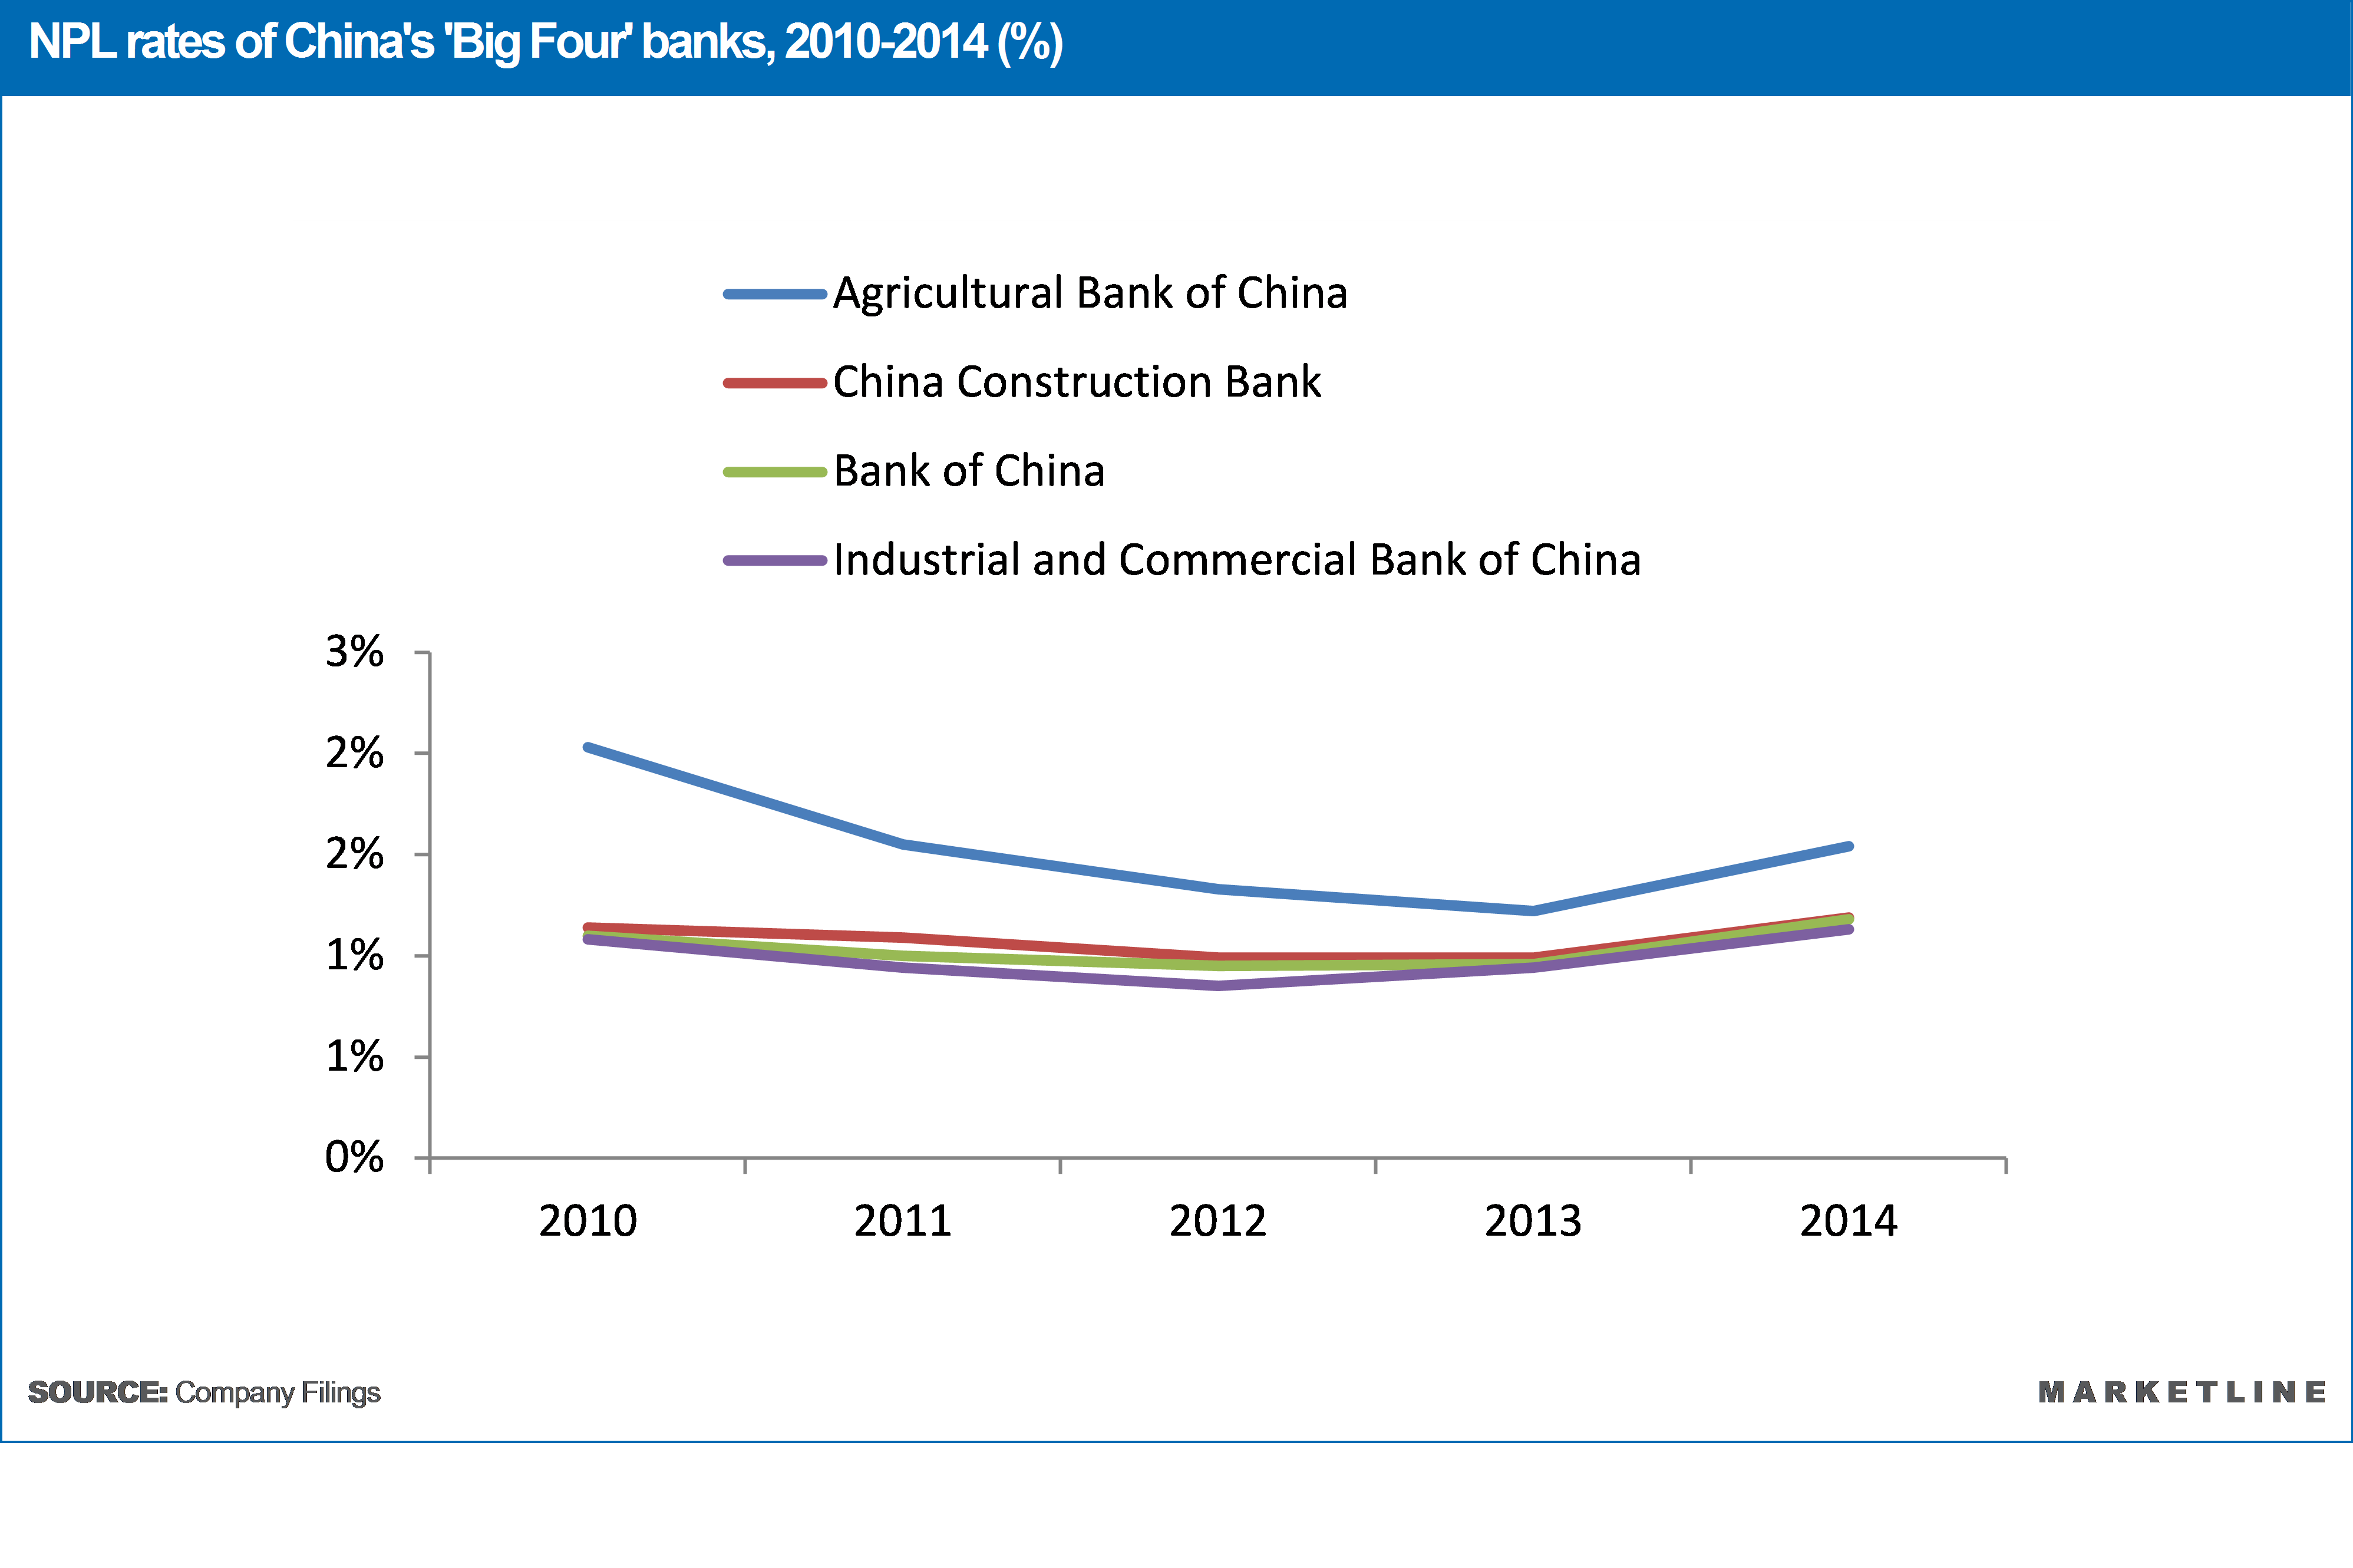 Case study on industrial and commercial bank of china